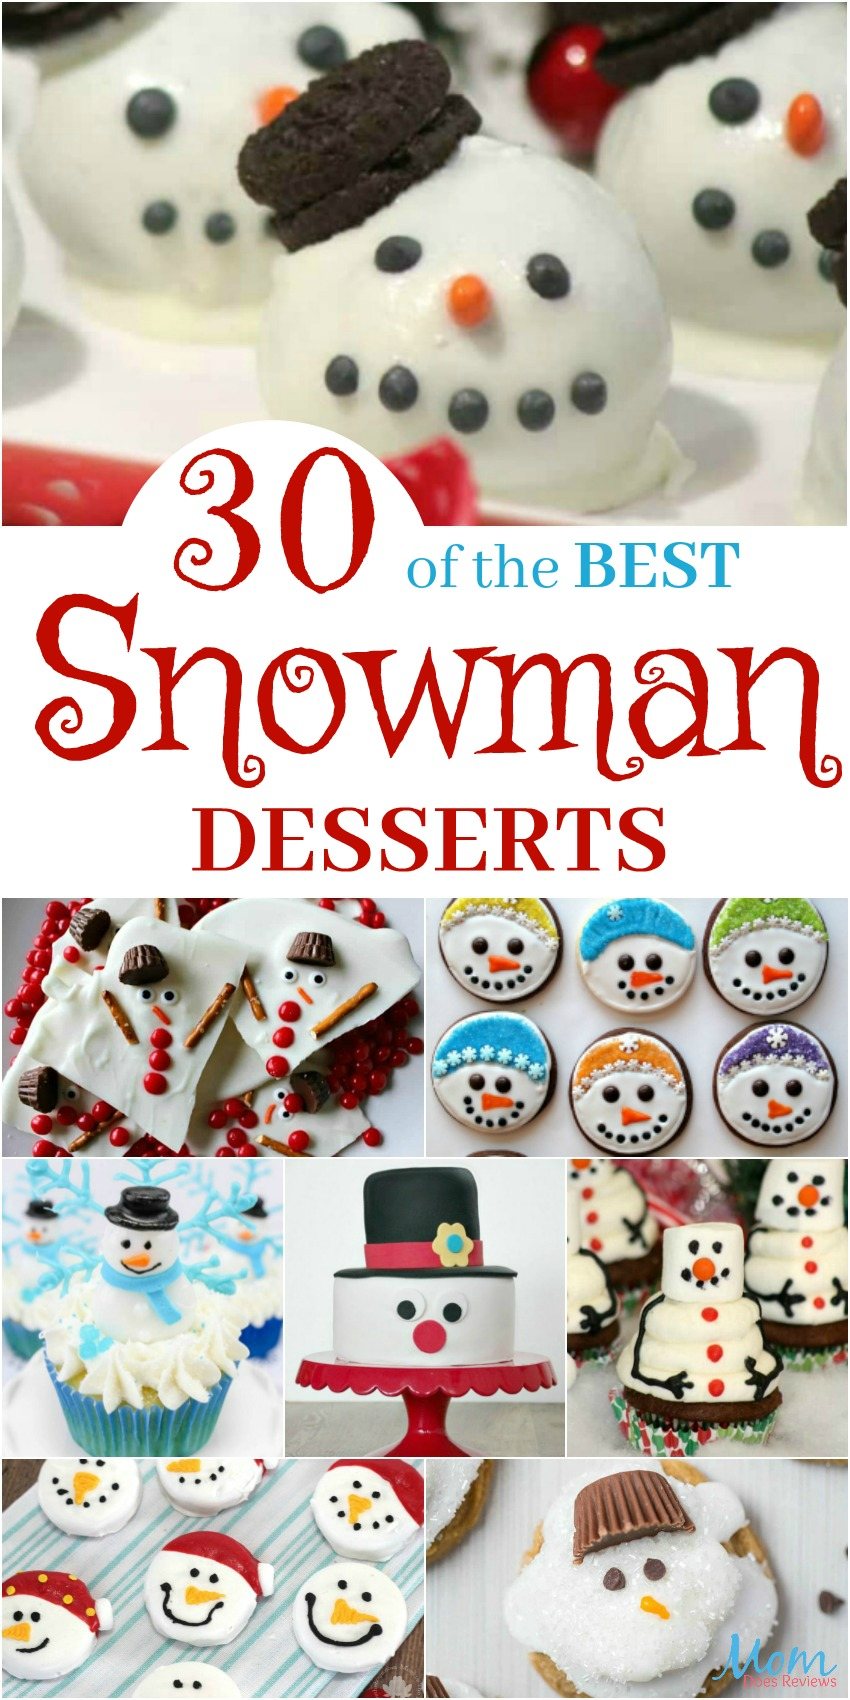 30 of the BEST Snowman Desserts Guaranteed to Bring a Smile #desserts #snowmen #christmas